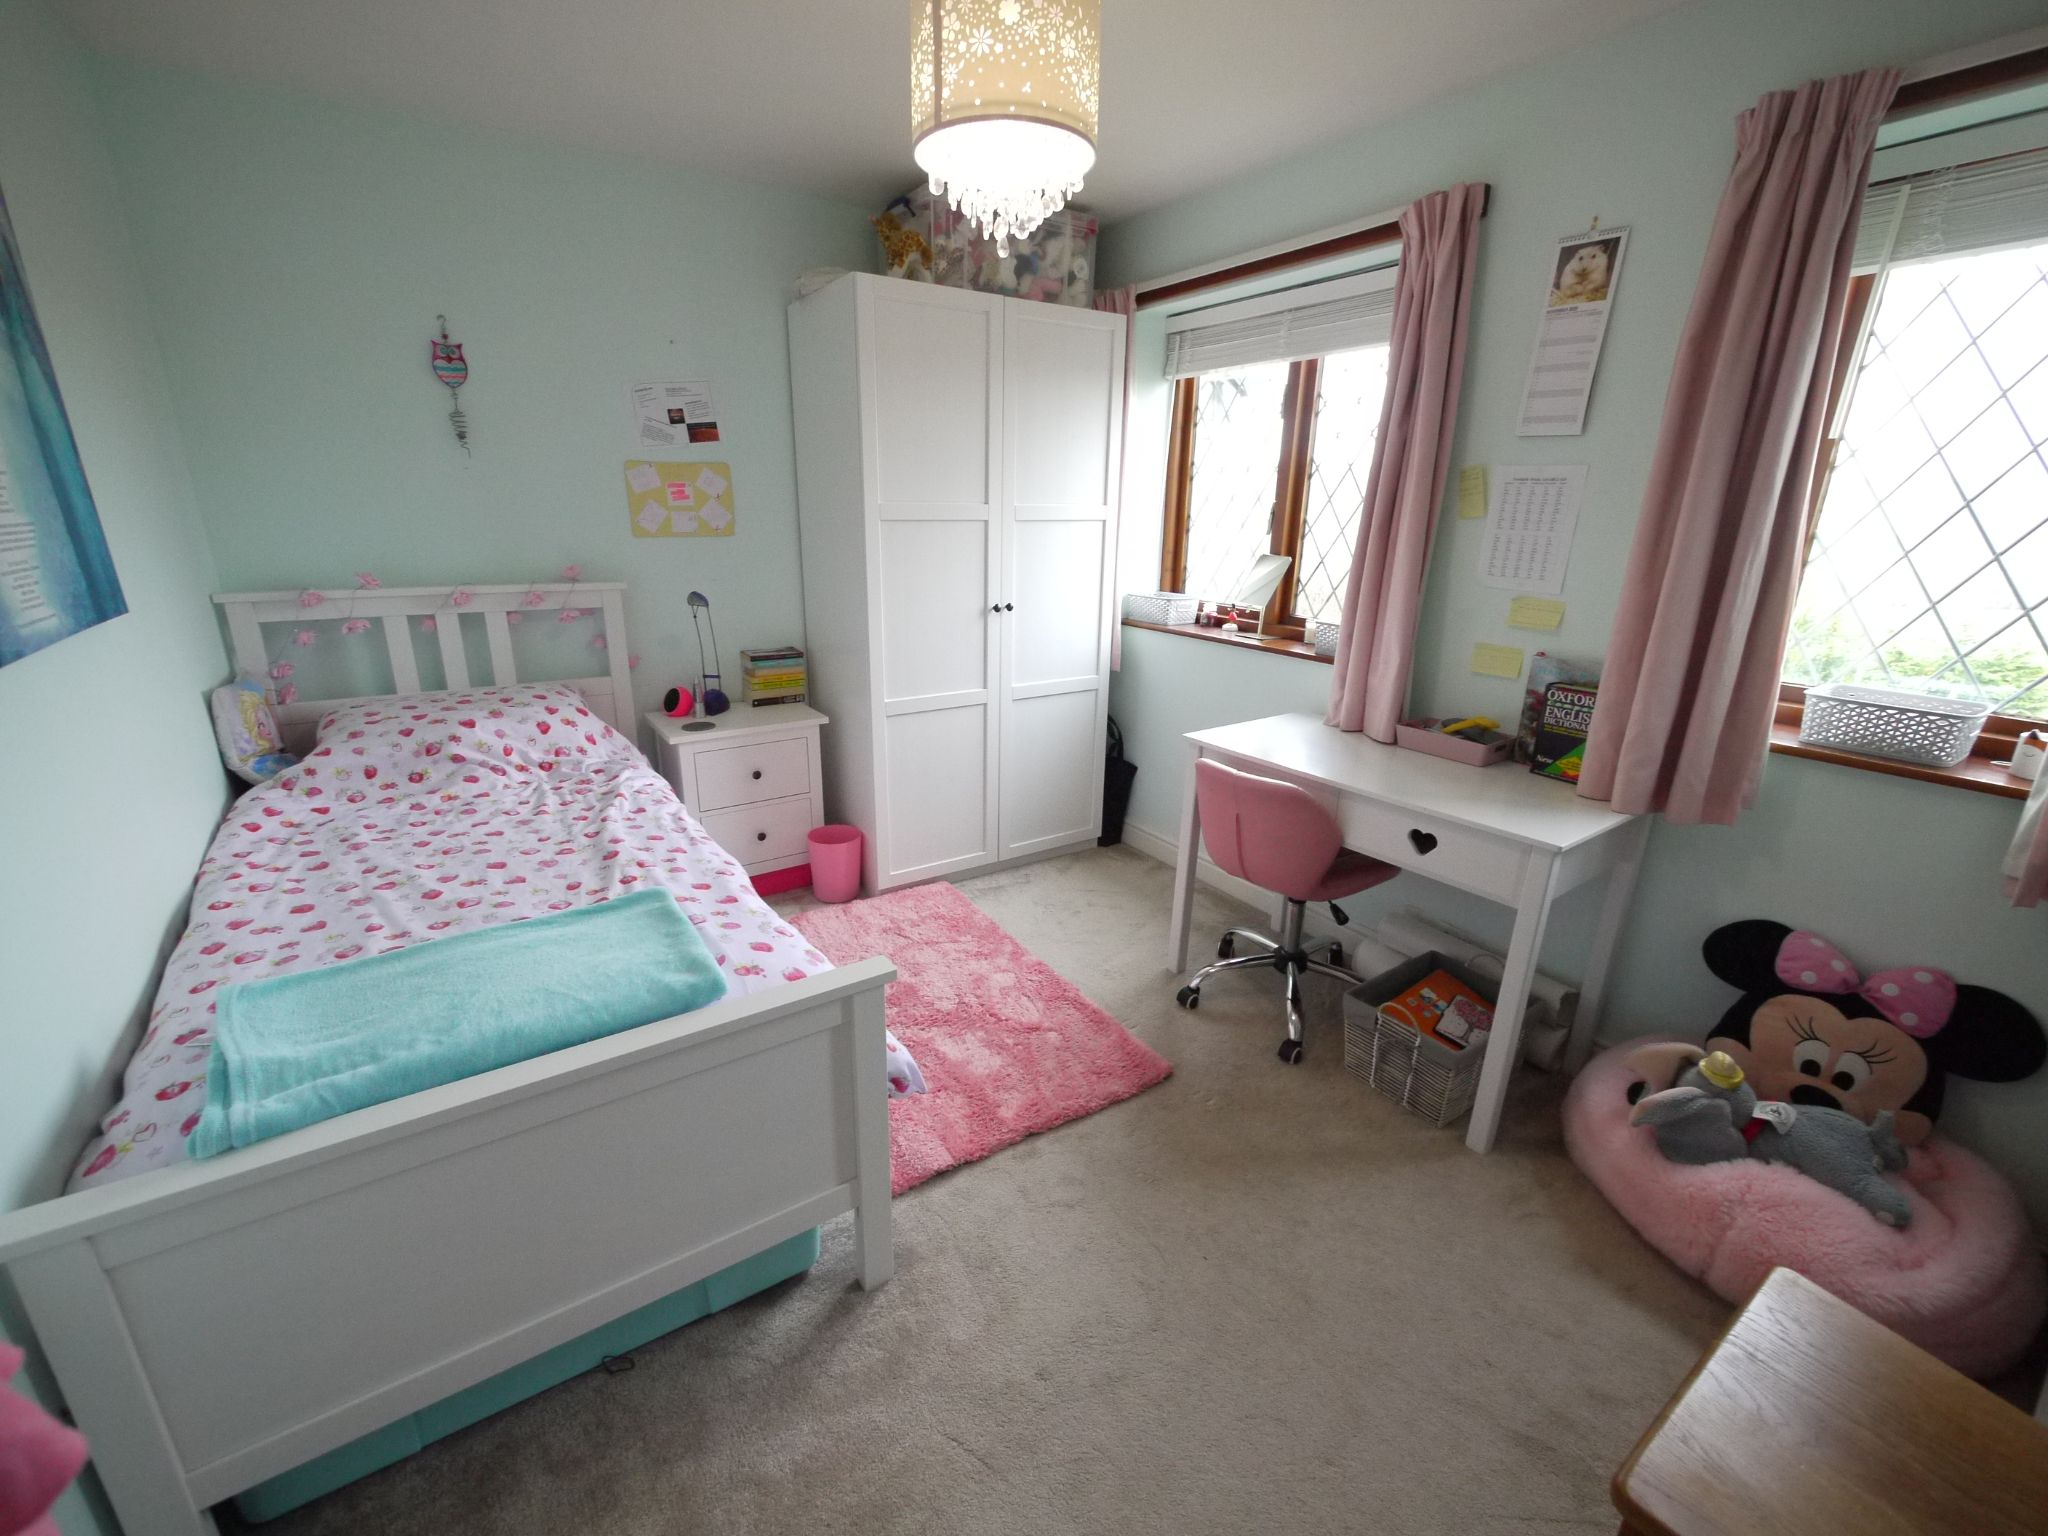 4 bedroom detached house SSTC in Brighouse - Bedroom 2.